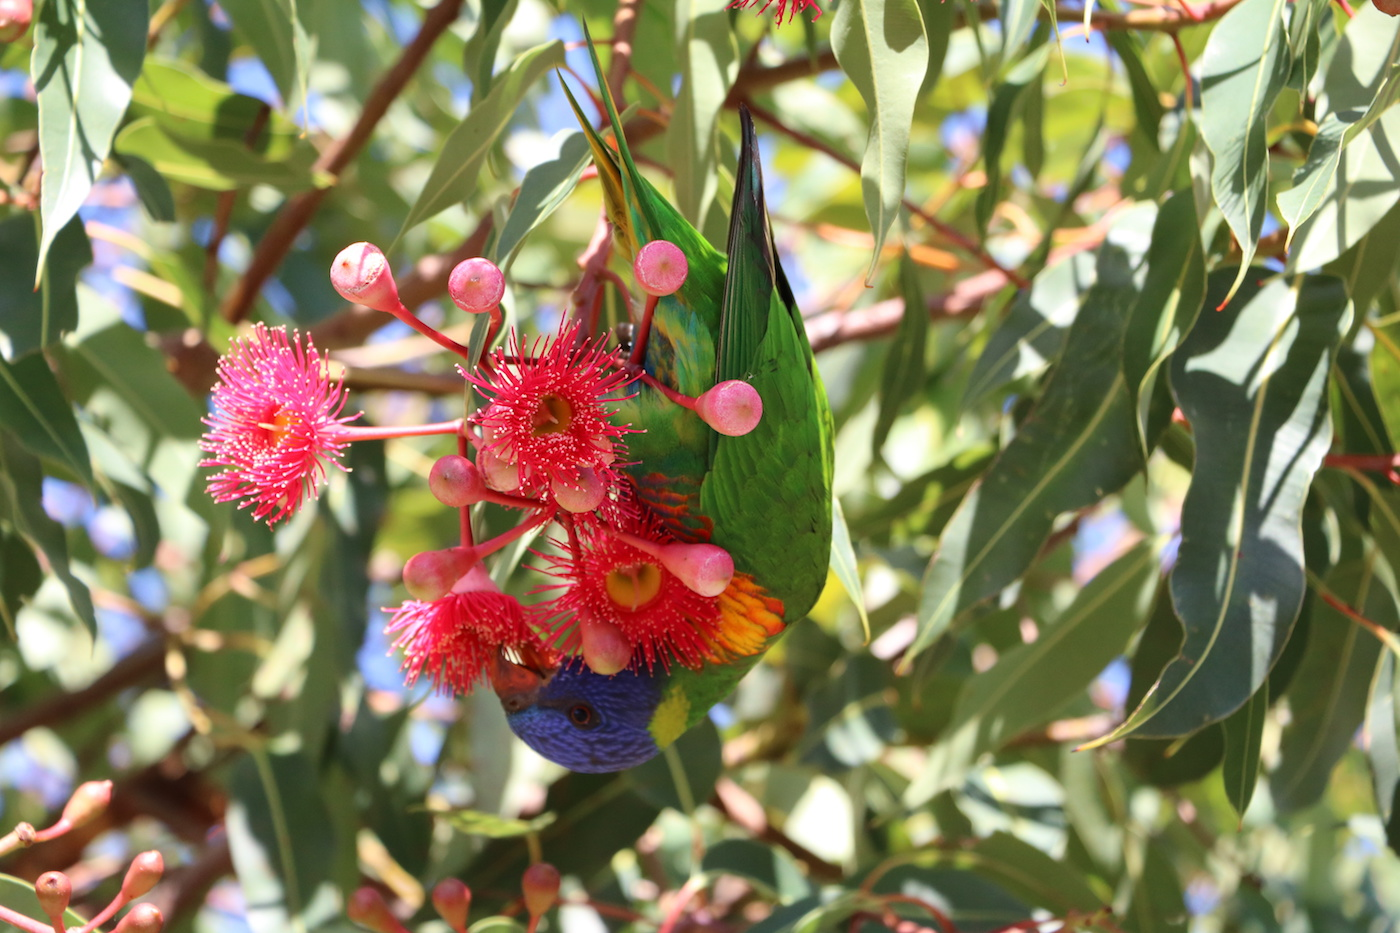 Corymbia ficifolia or red flowering gum is native to southern Western Australia.